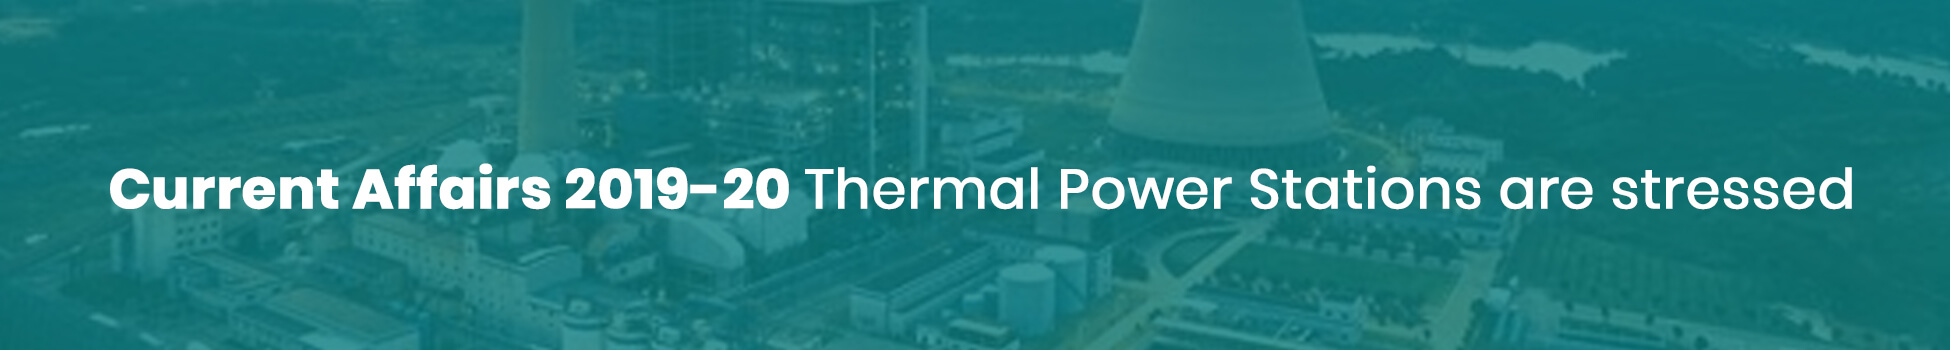 Current Affairs 2019-20 Thermal Power Stations are stressed